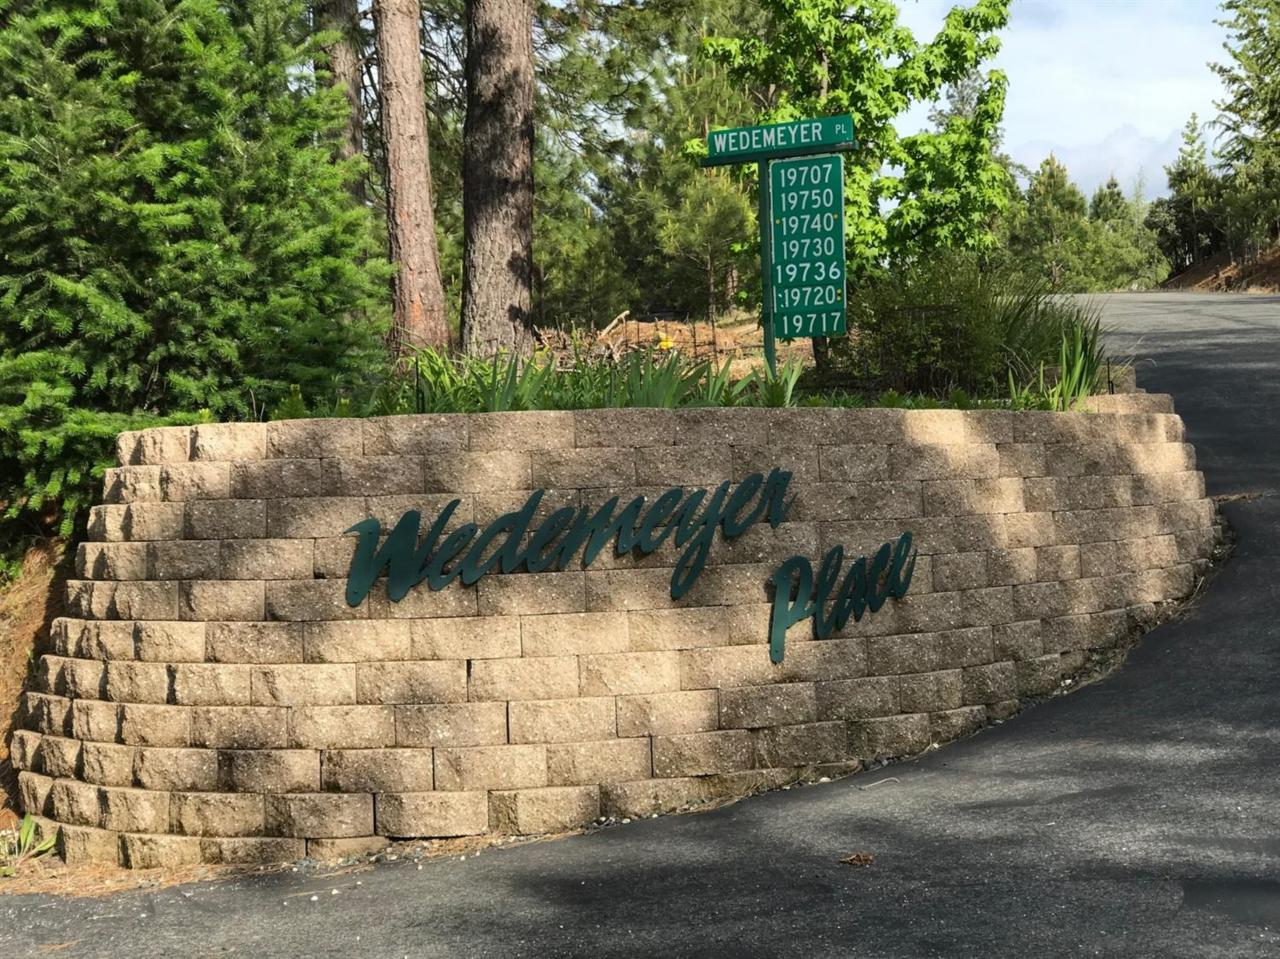 0-Lot 59 Wedemeyer Place - Photo 1